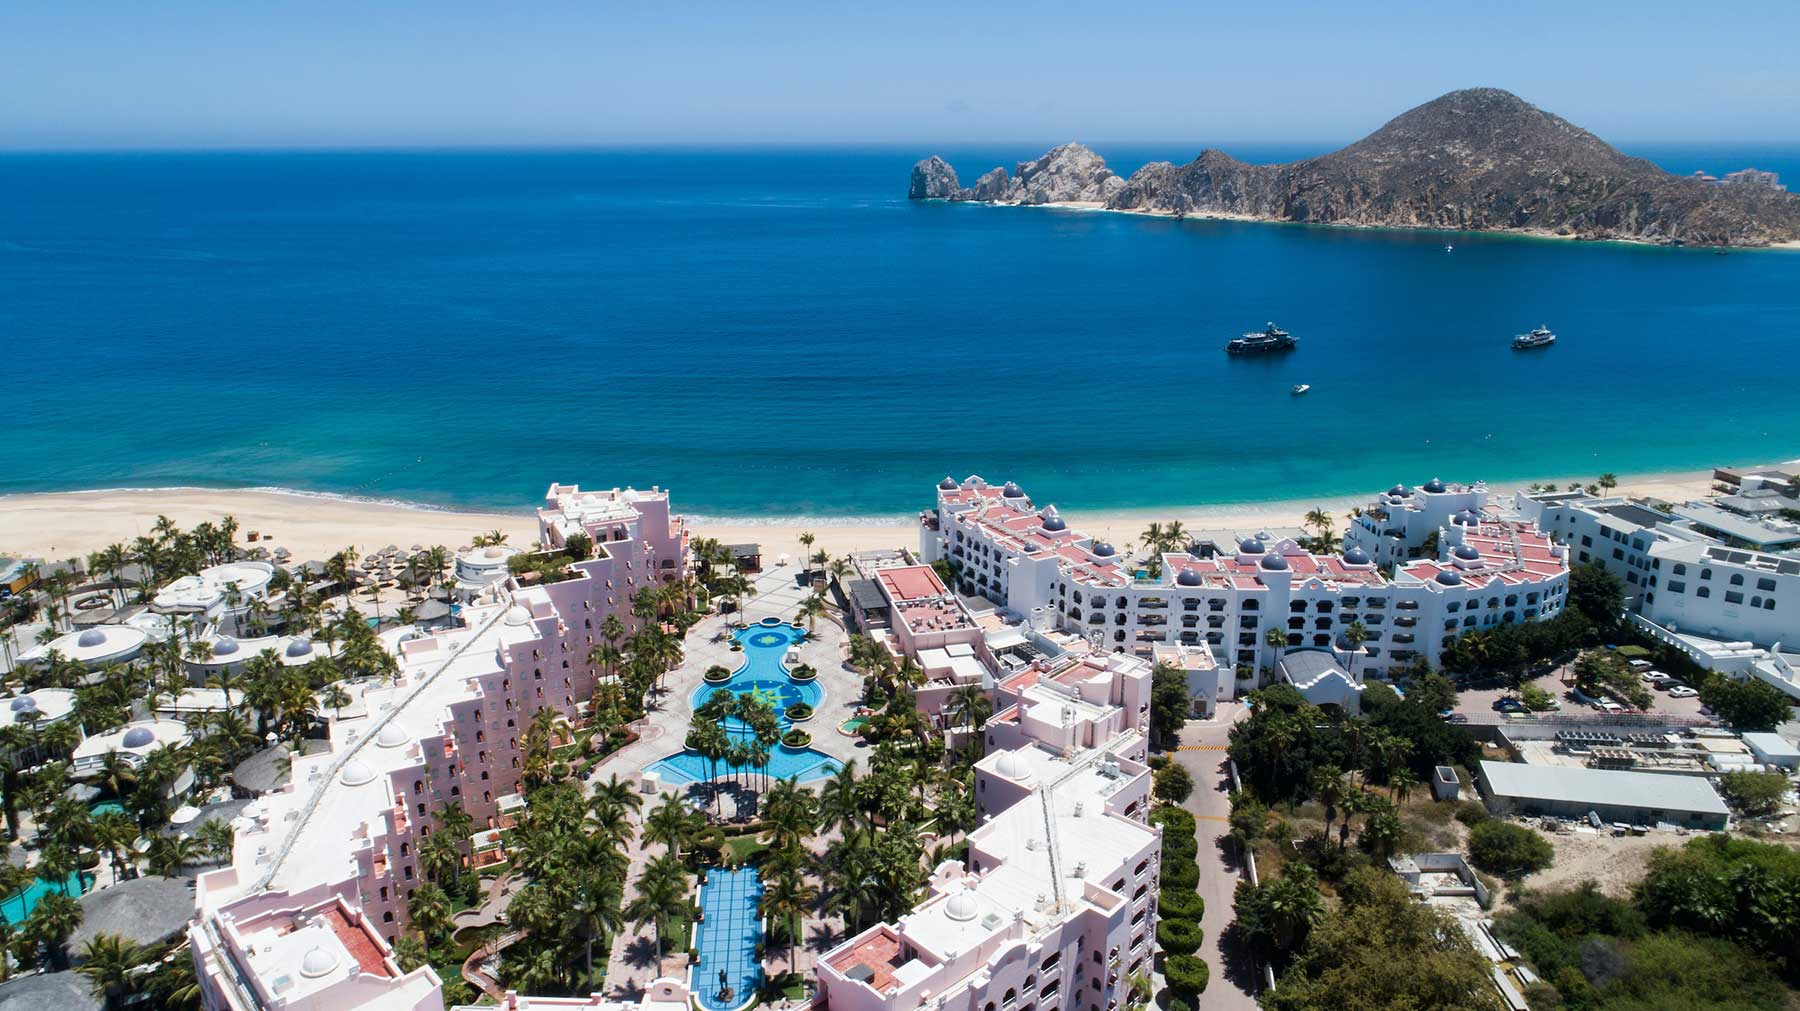 What to do in San Jose del Cabo - visit the cabos